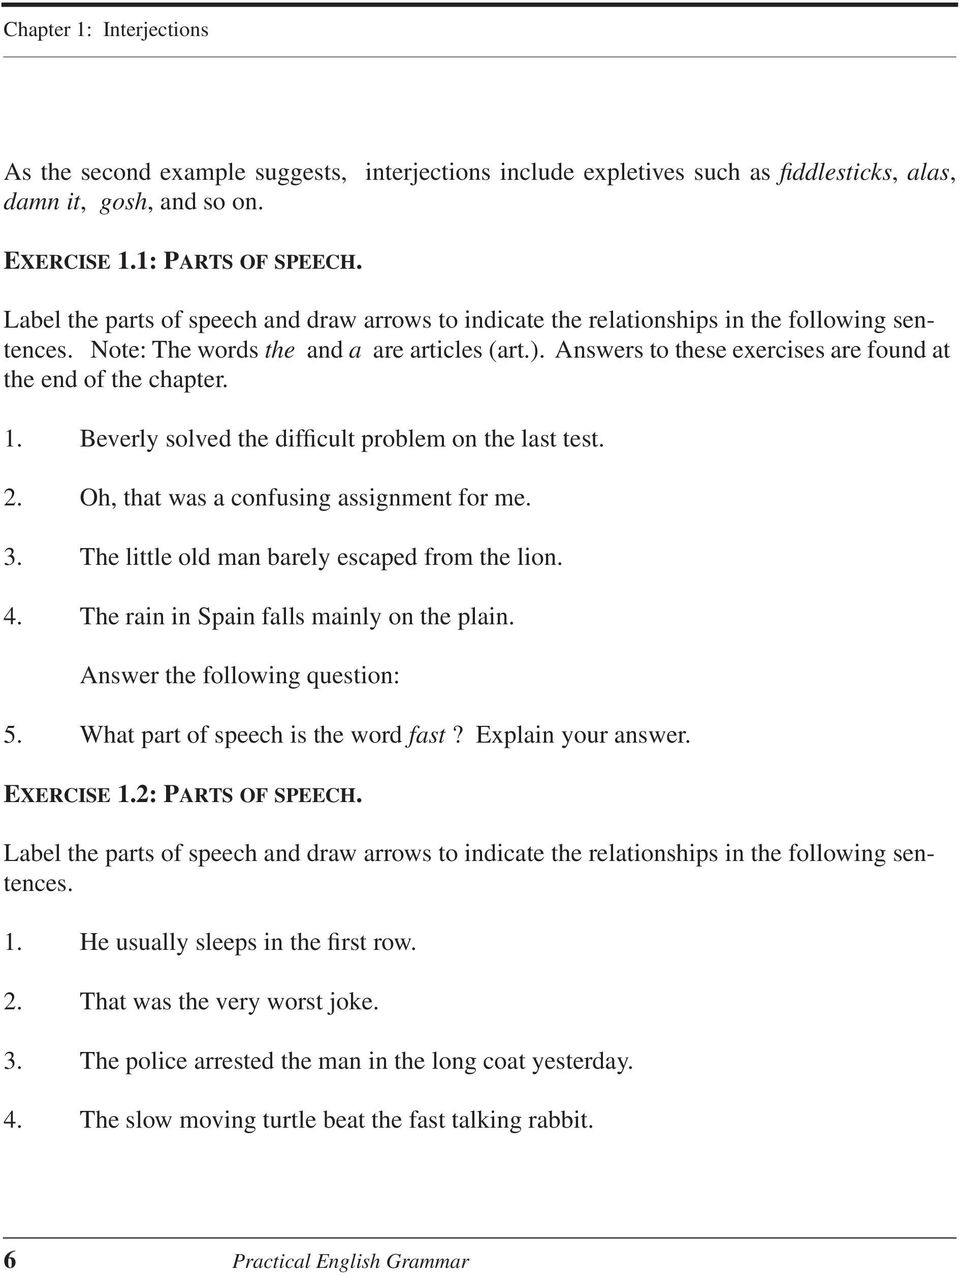 The parts of speech: the basic labels - PDF